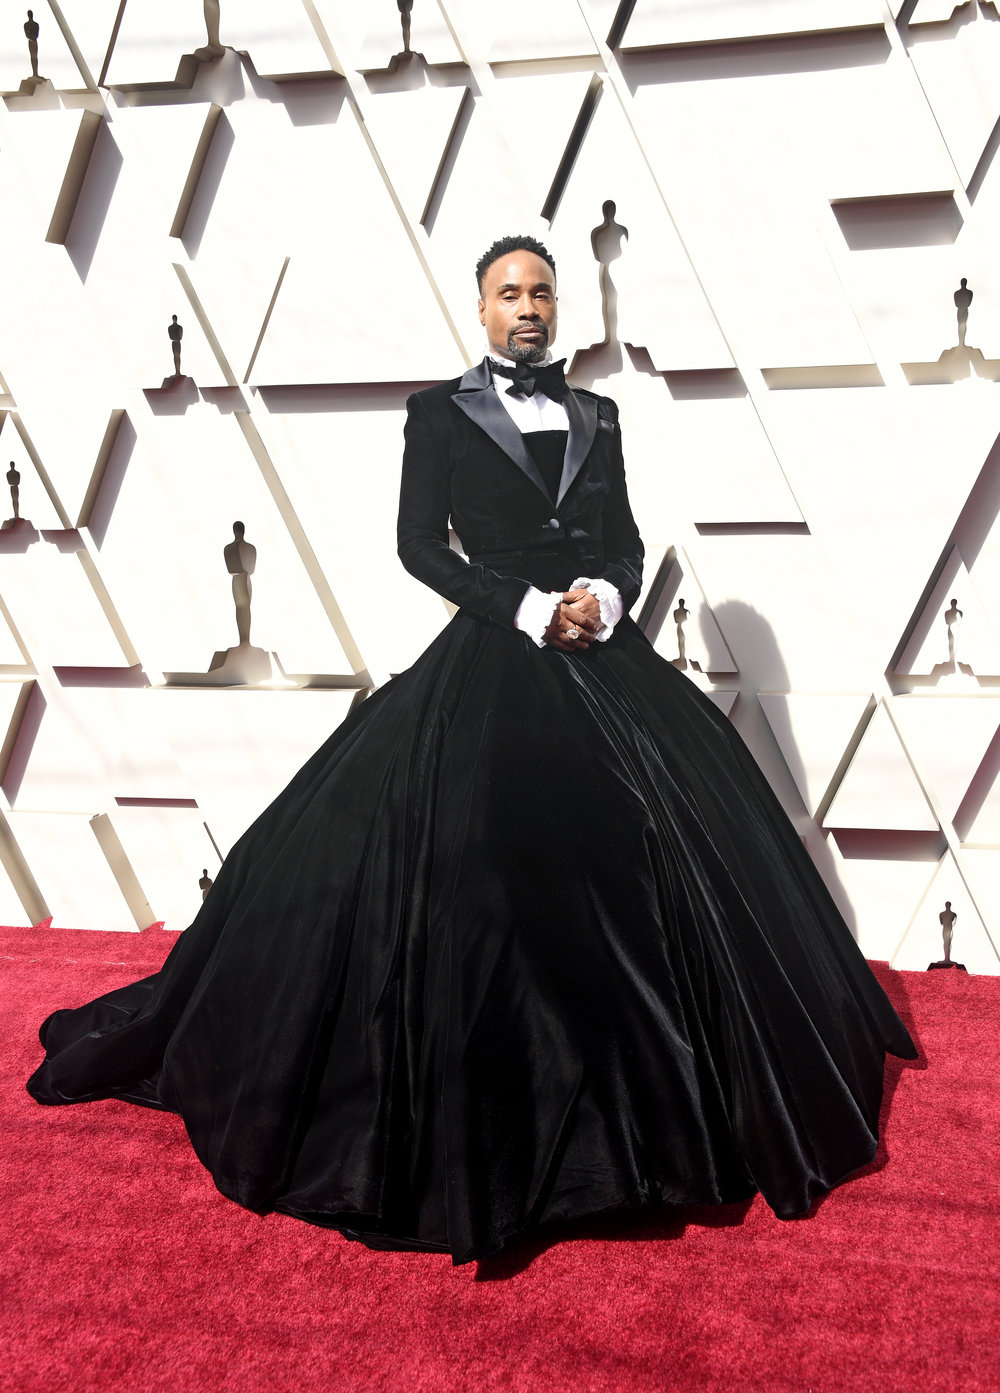 Billy Porter at the Oscars in Christian Siriano Styled by RRR Creative's Sam Ratelle.jpeg